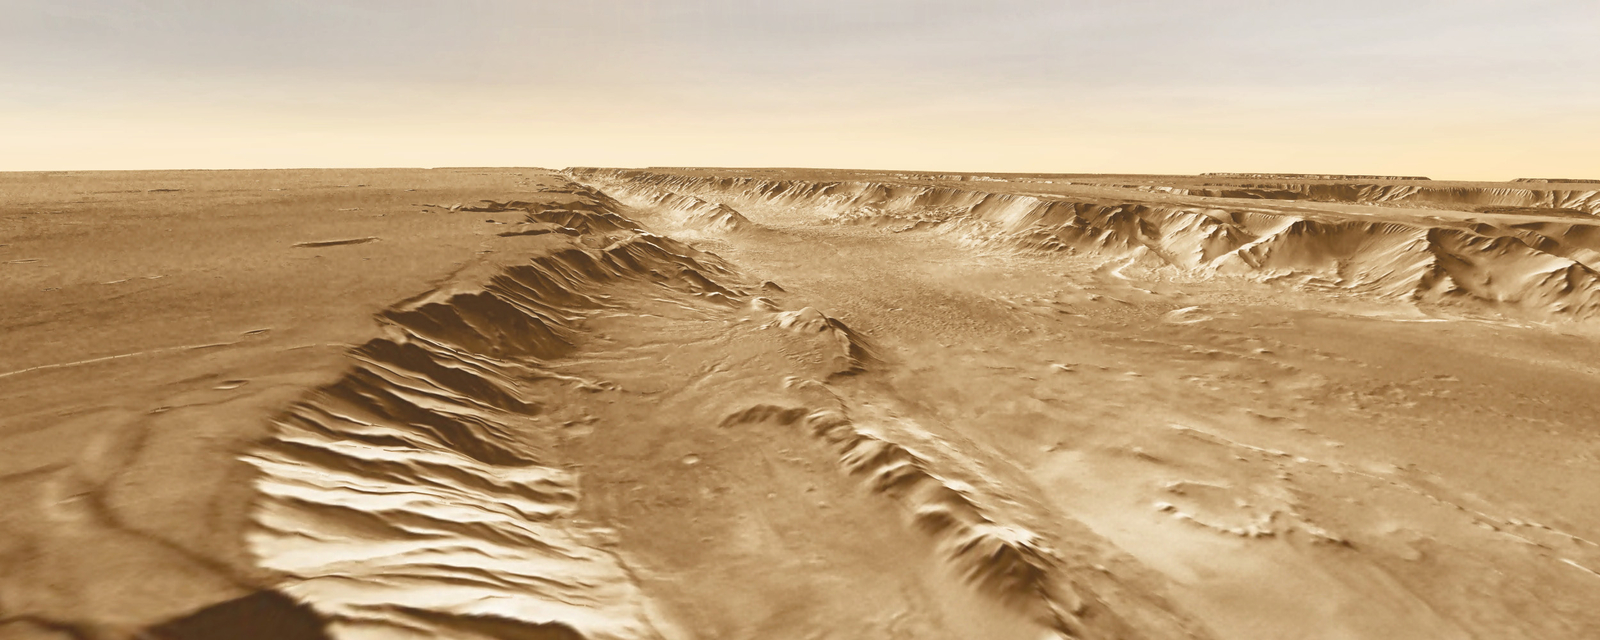 A small basin (center foreground) lies below the southern rim of Melas Chasma, part of Valles Marineris.